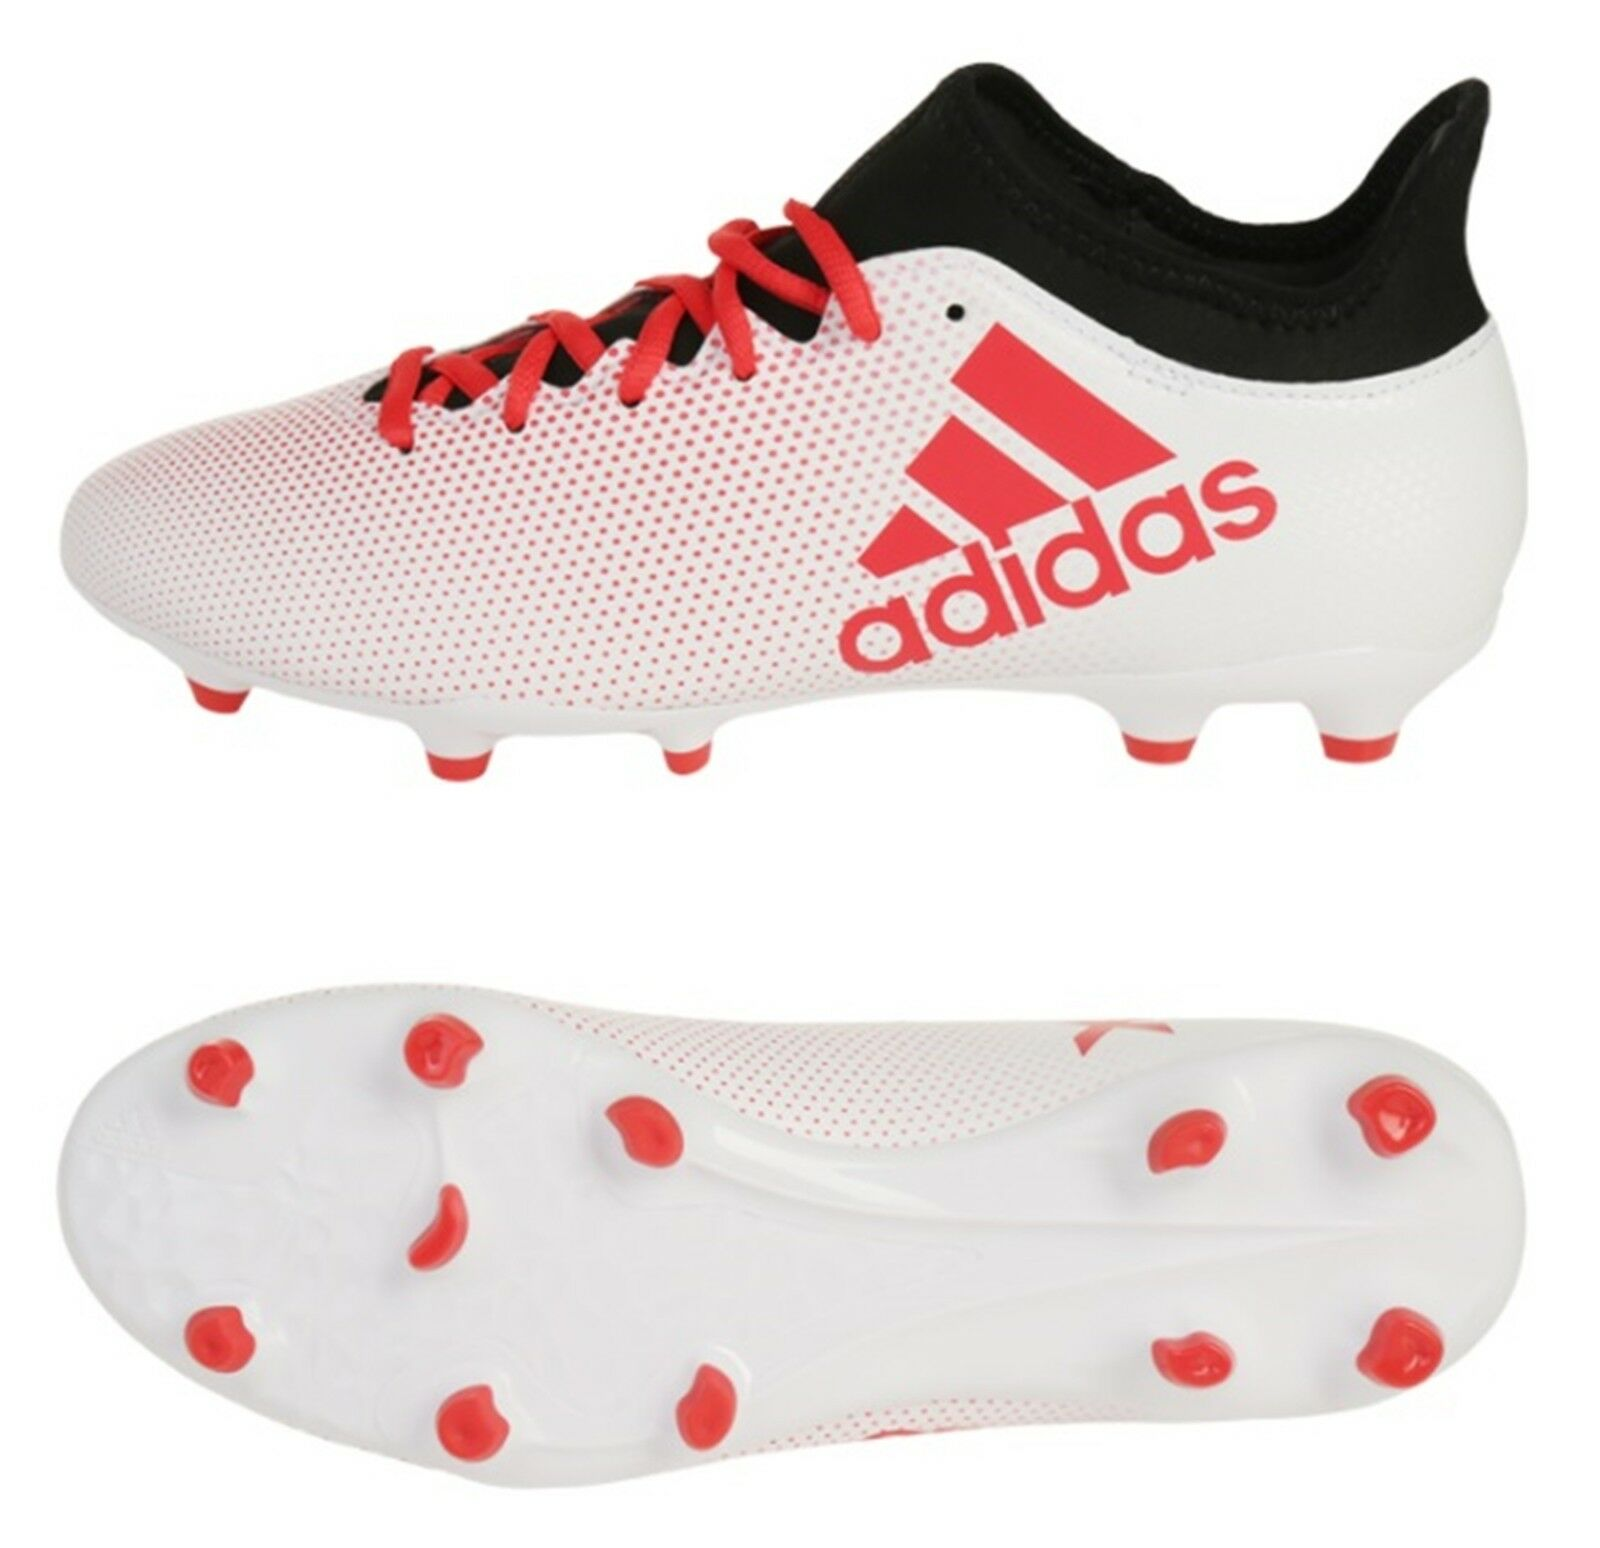 Adidas Hommes X 17.3 FG Cleats Soccer blanc rouge Football Futsal chaussures Spike CP9192